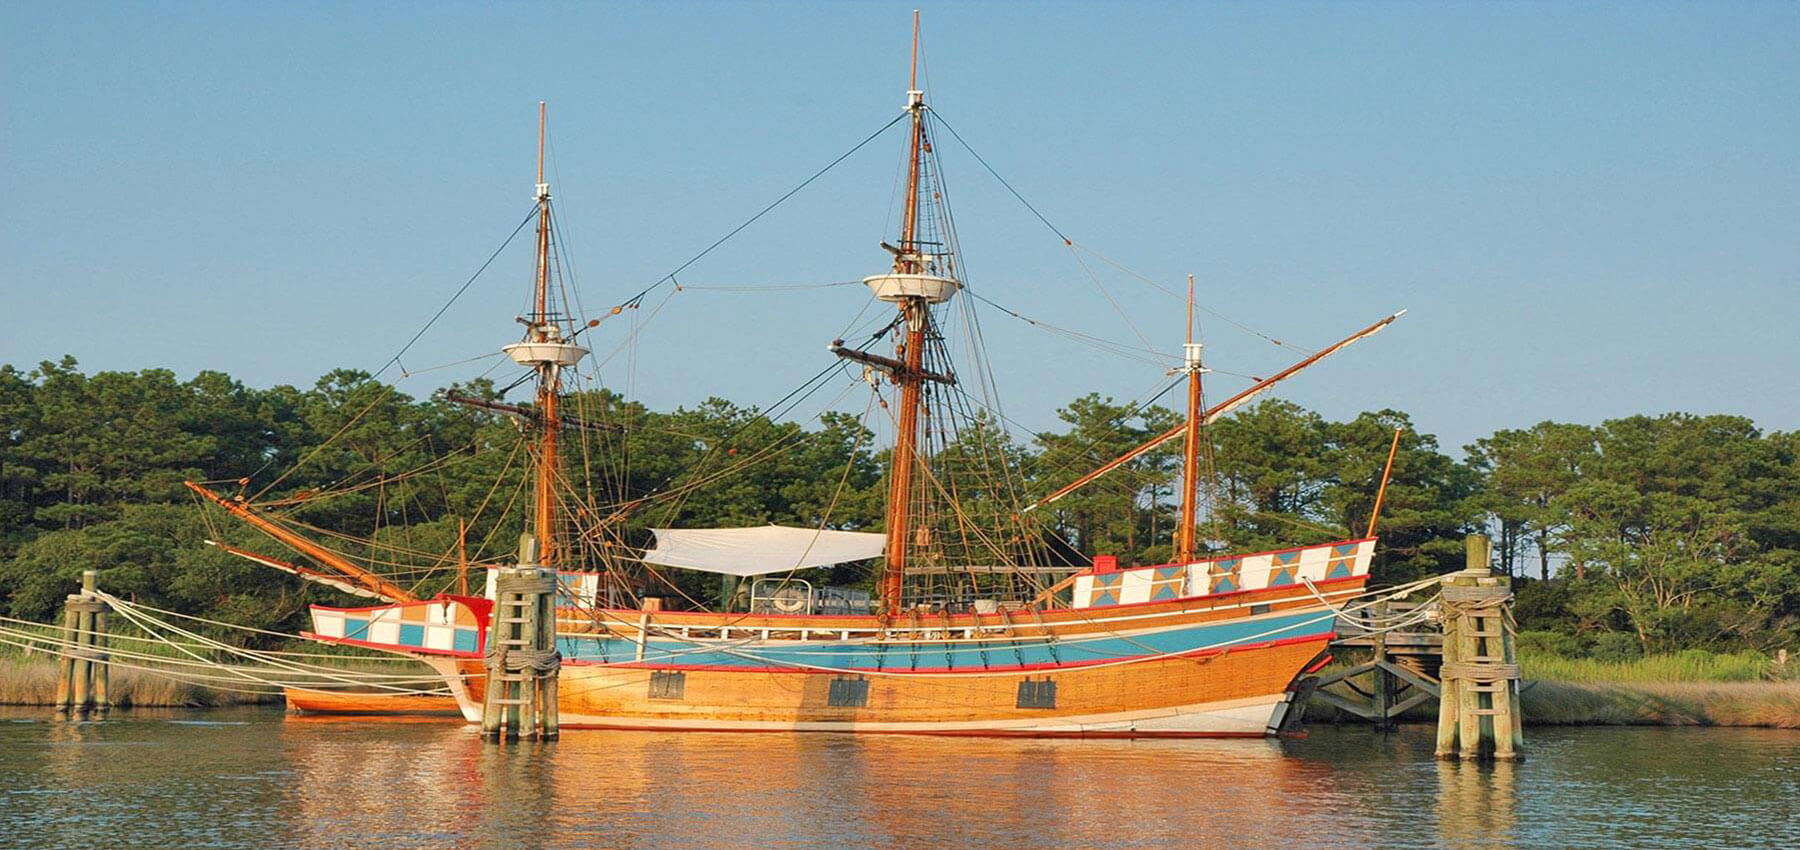 Roanoke Island Queen E II